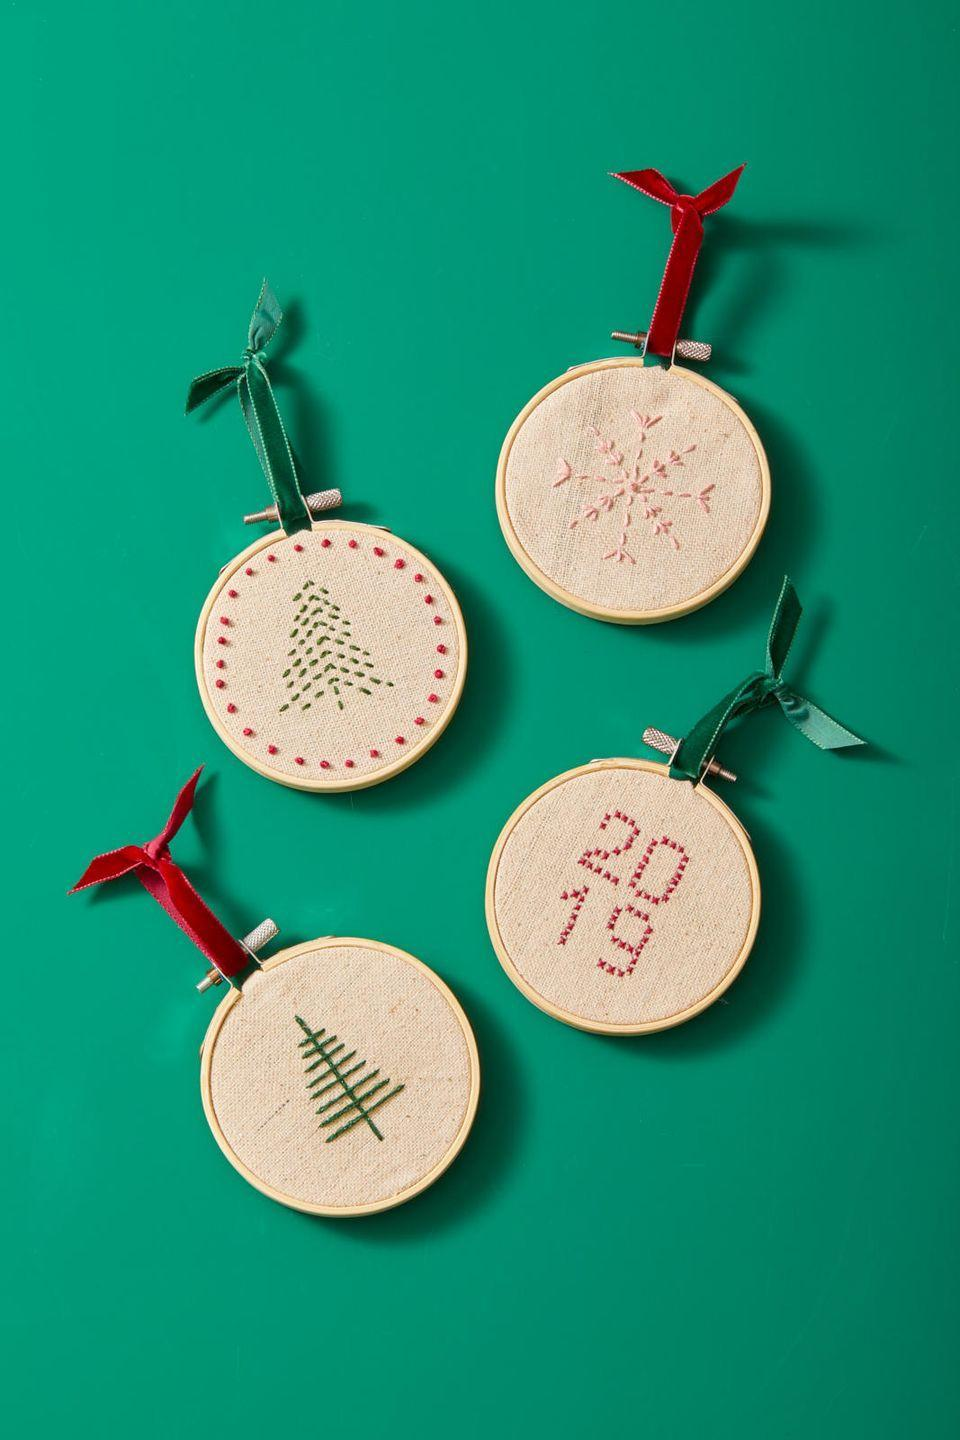 """<p>Can you cross-stitch? If so, you can crewel embroider a festive pattern on a small embroidery hoop, and get that DIY feel onto your tree. </p><p><strong>RELATED</strong>: <a href=""""https://www.goodhousekeeping.com/holidays/christmas-ideas/g393/homemade-christmas-ornaments/"""" rel=""""nofollow noopener"""" target=""""_blank"""" data-ylk=""""slk:The Best Christmas Ornaments to Make This Season"""" class=""""link rapid-noclick-resp"""">The Best Christmas Ornaments to Make This Season</a></p>"""